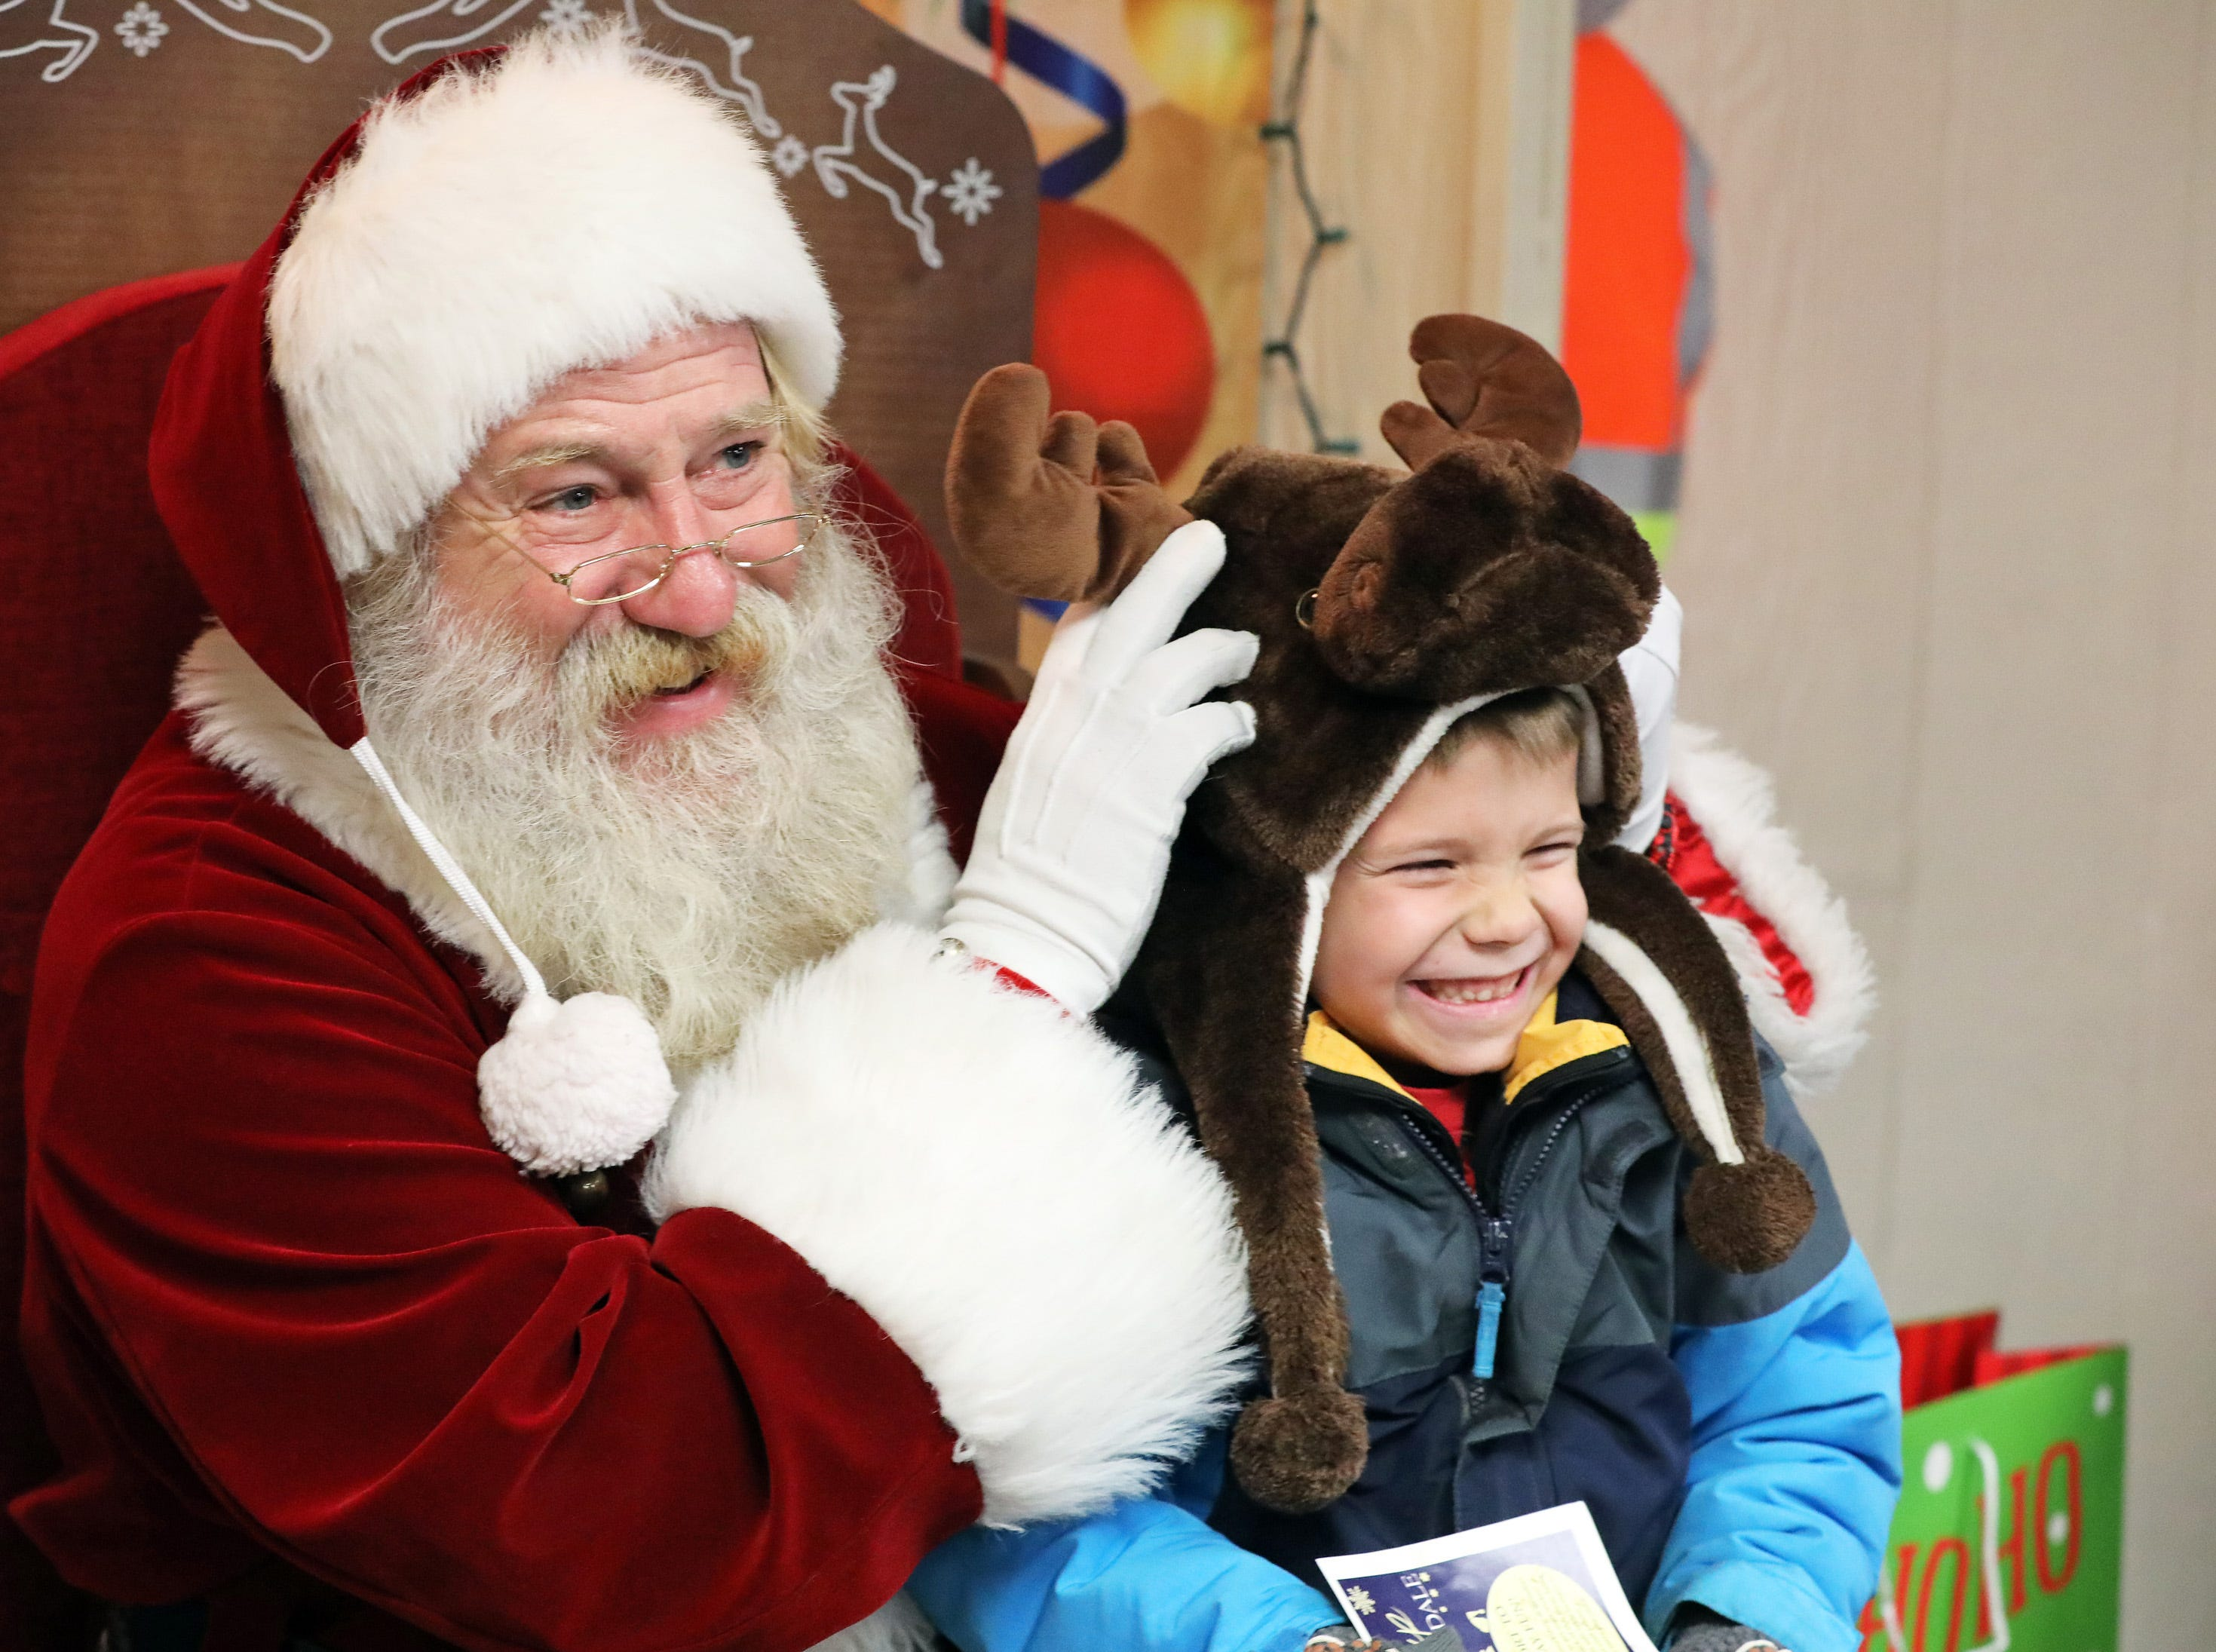 Santa playfully adjusts the moose hat of Jeff Neas, 6, of Urbandale during UCAN's  third annual Light Up Urbandale on Sunday, Dec. 2, 2018 at Lions Park in Urbandale. Holiday festivities included a visit from Santa, crafts, goodies, official tree lighting ceremony, live reindeer and entertainment.